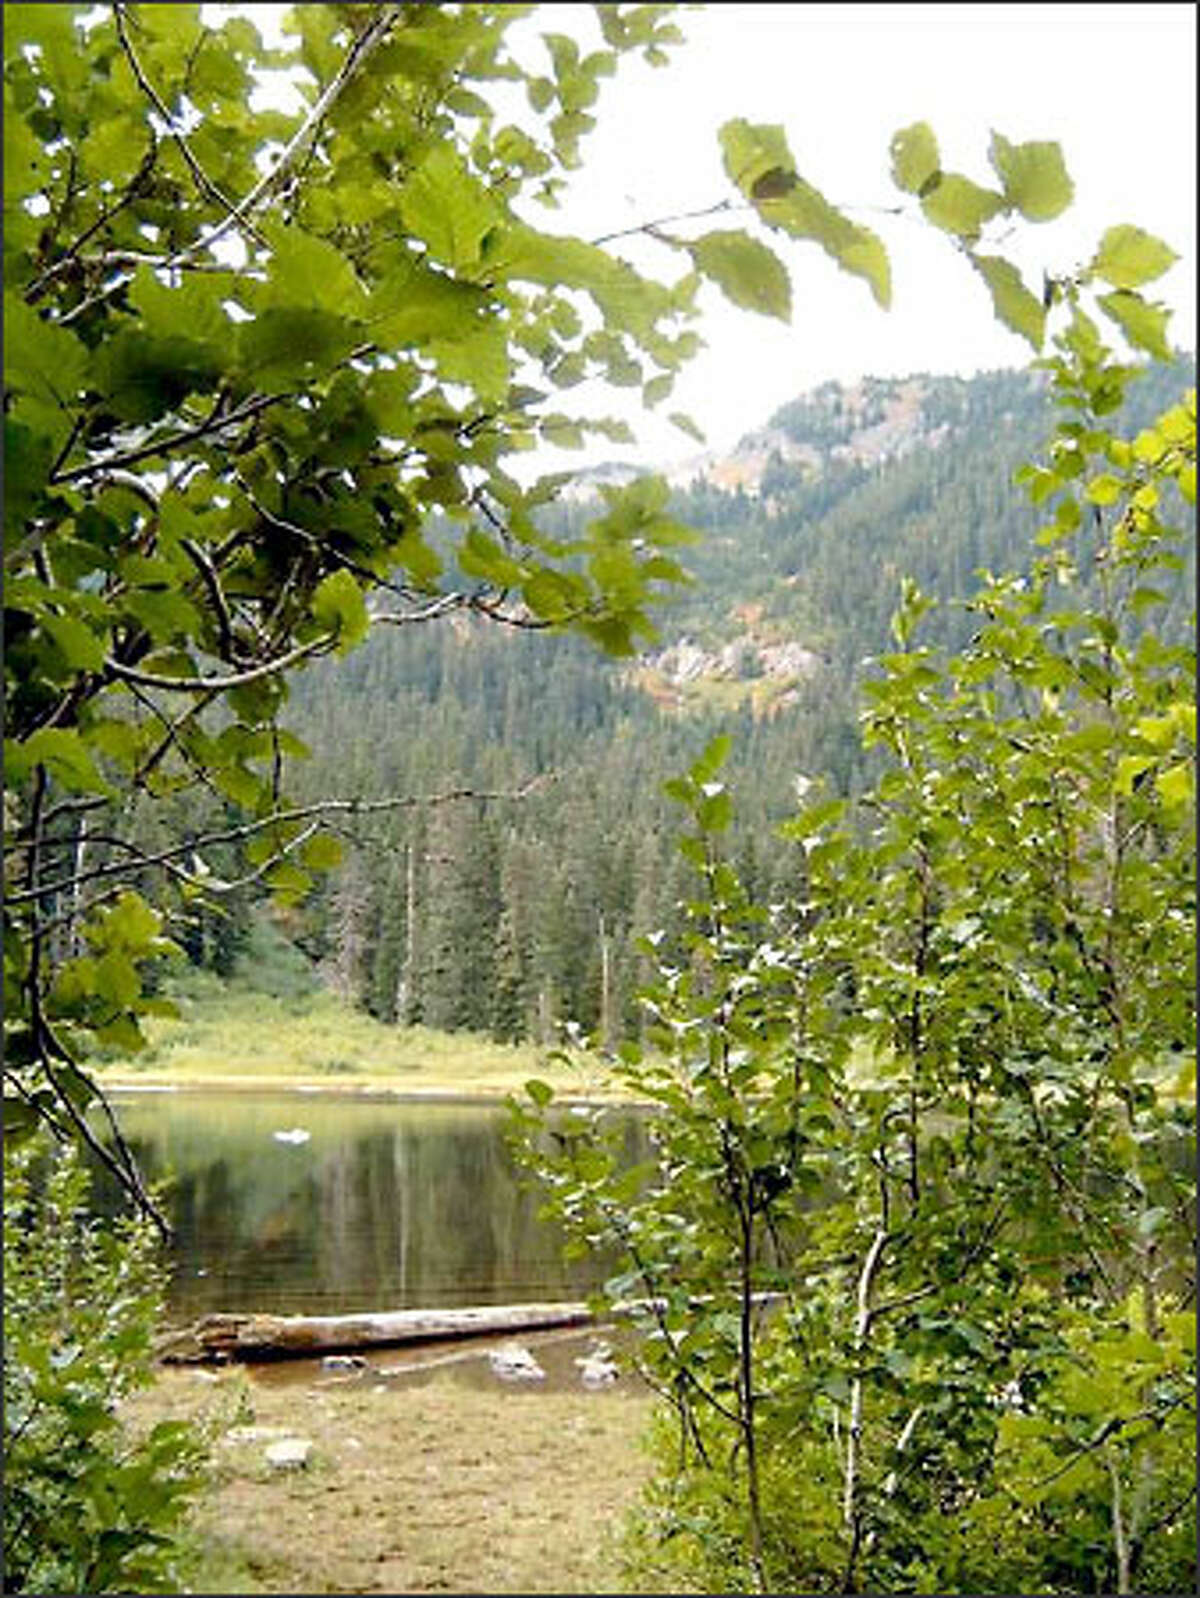 Even though Twin Lake is just east of Snoqualmie Pass and the hike is short and easy, the chances for peace and solitude are quite good.